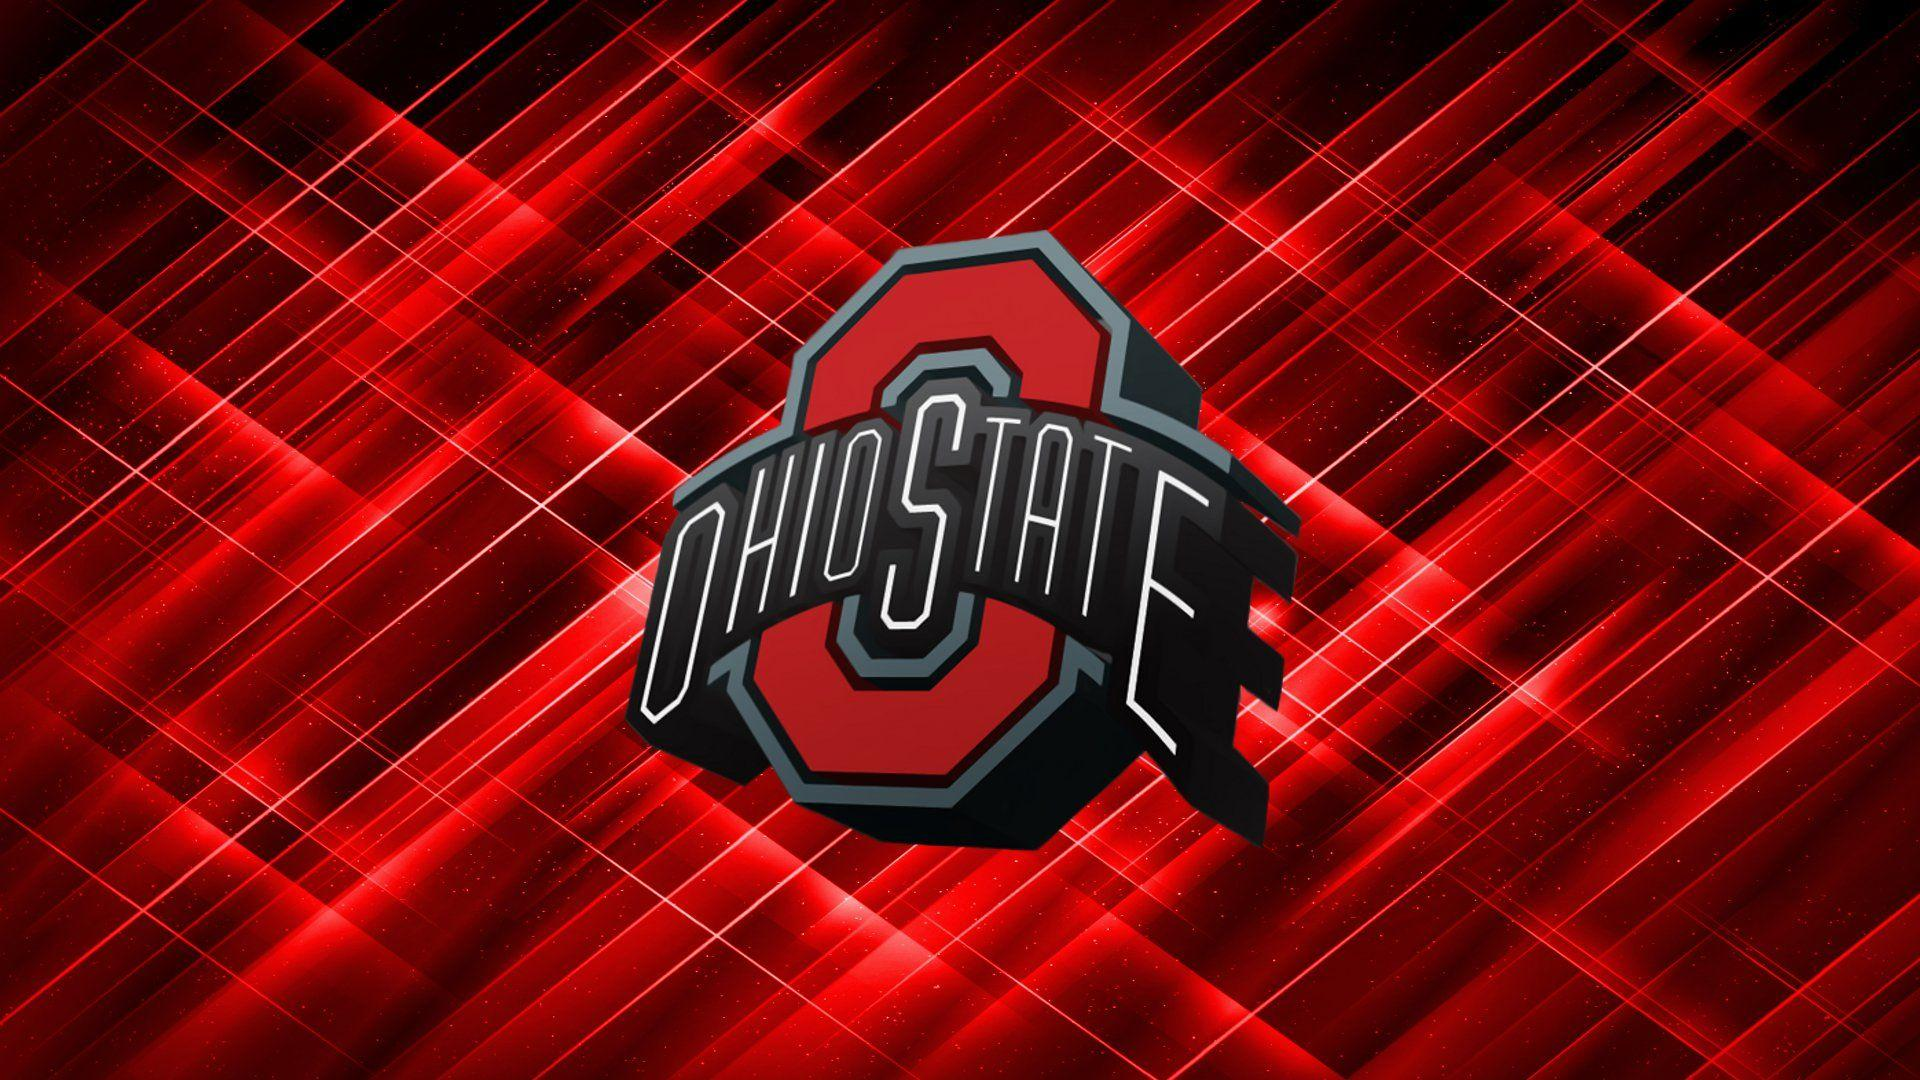 best OHIO STATE PHONE WALLPAPERS images on Pinterest